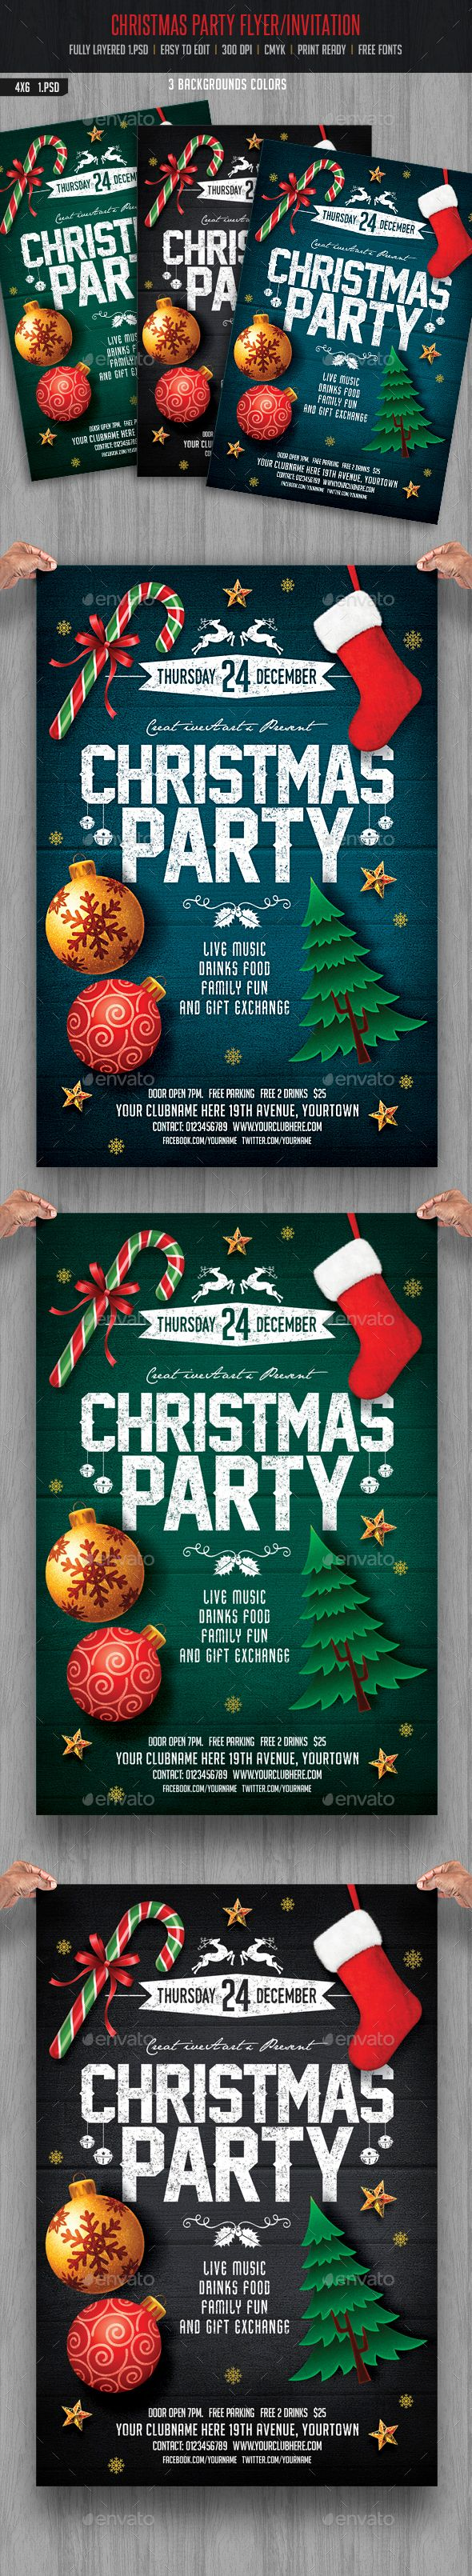 Christmas Party Flyer/ Invitation Template PSD #design #xmas Download: http://graphicriver.net/item/christmas-party-flyer-invitation/13750884?ref=ksioks